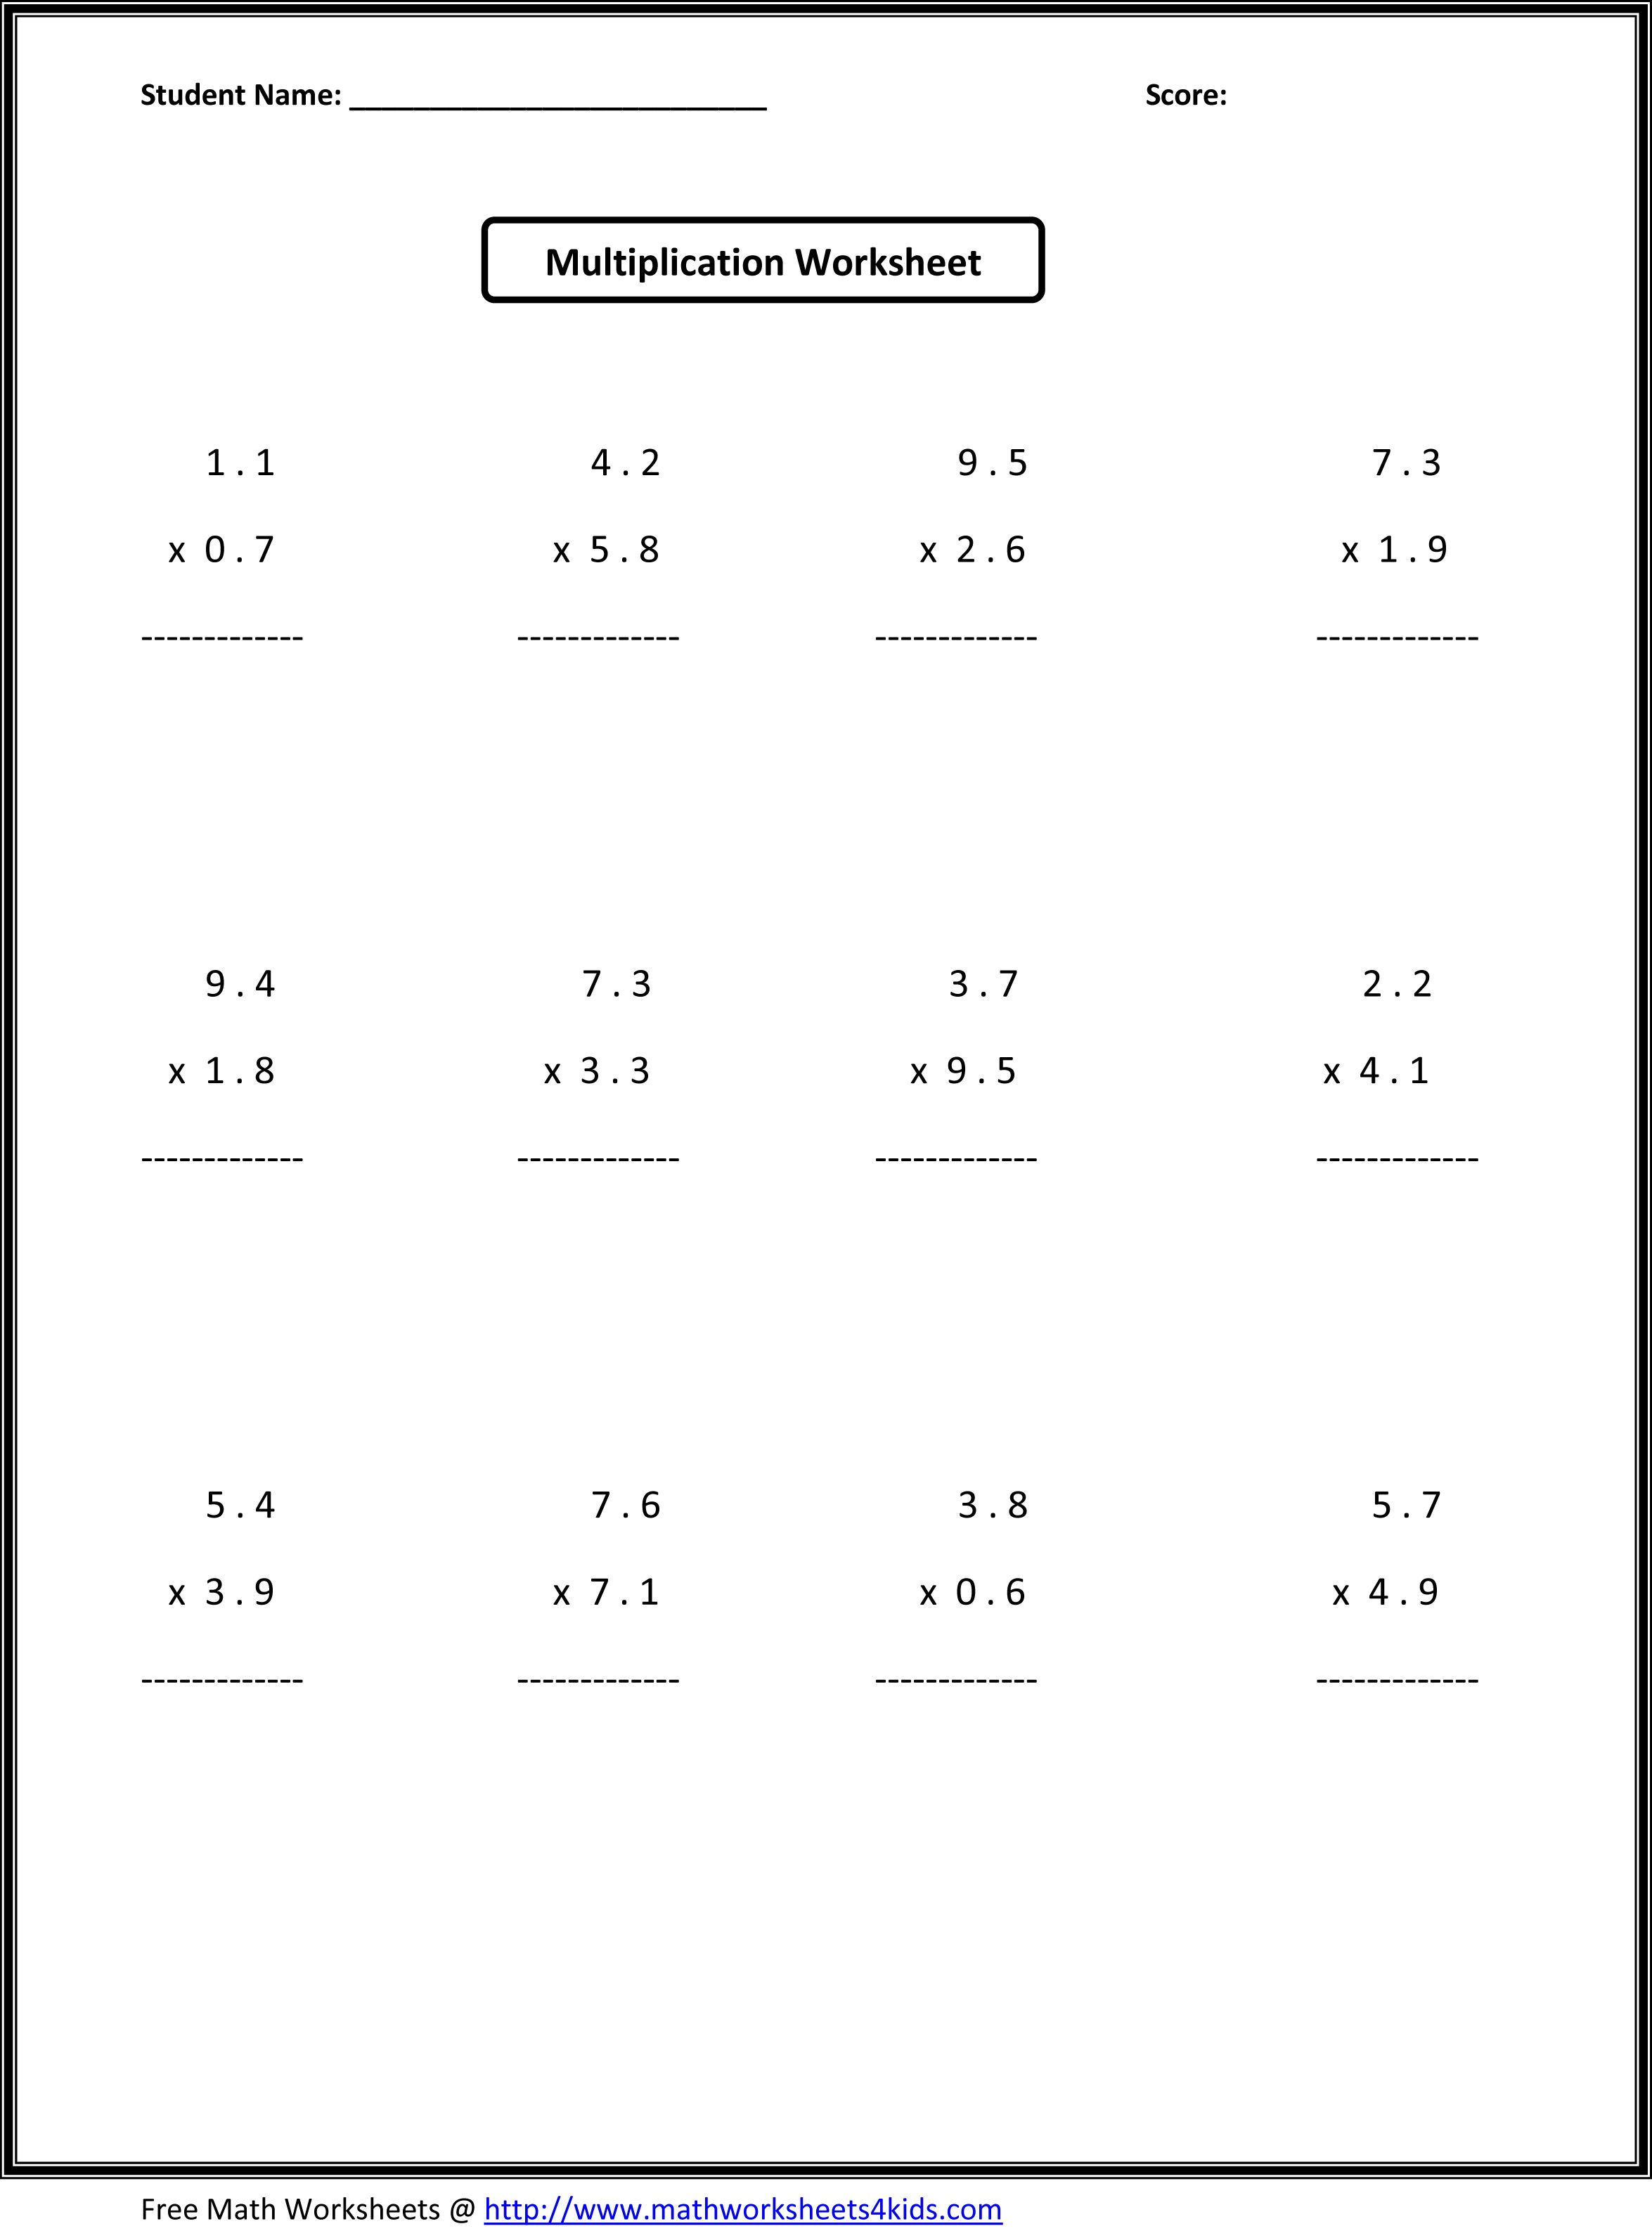 Worksheets Math Worksheet 7th Grade 7th grade math worksheets value absolute based on basic math